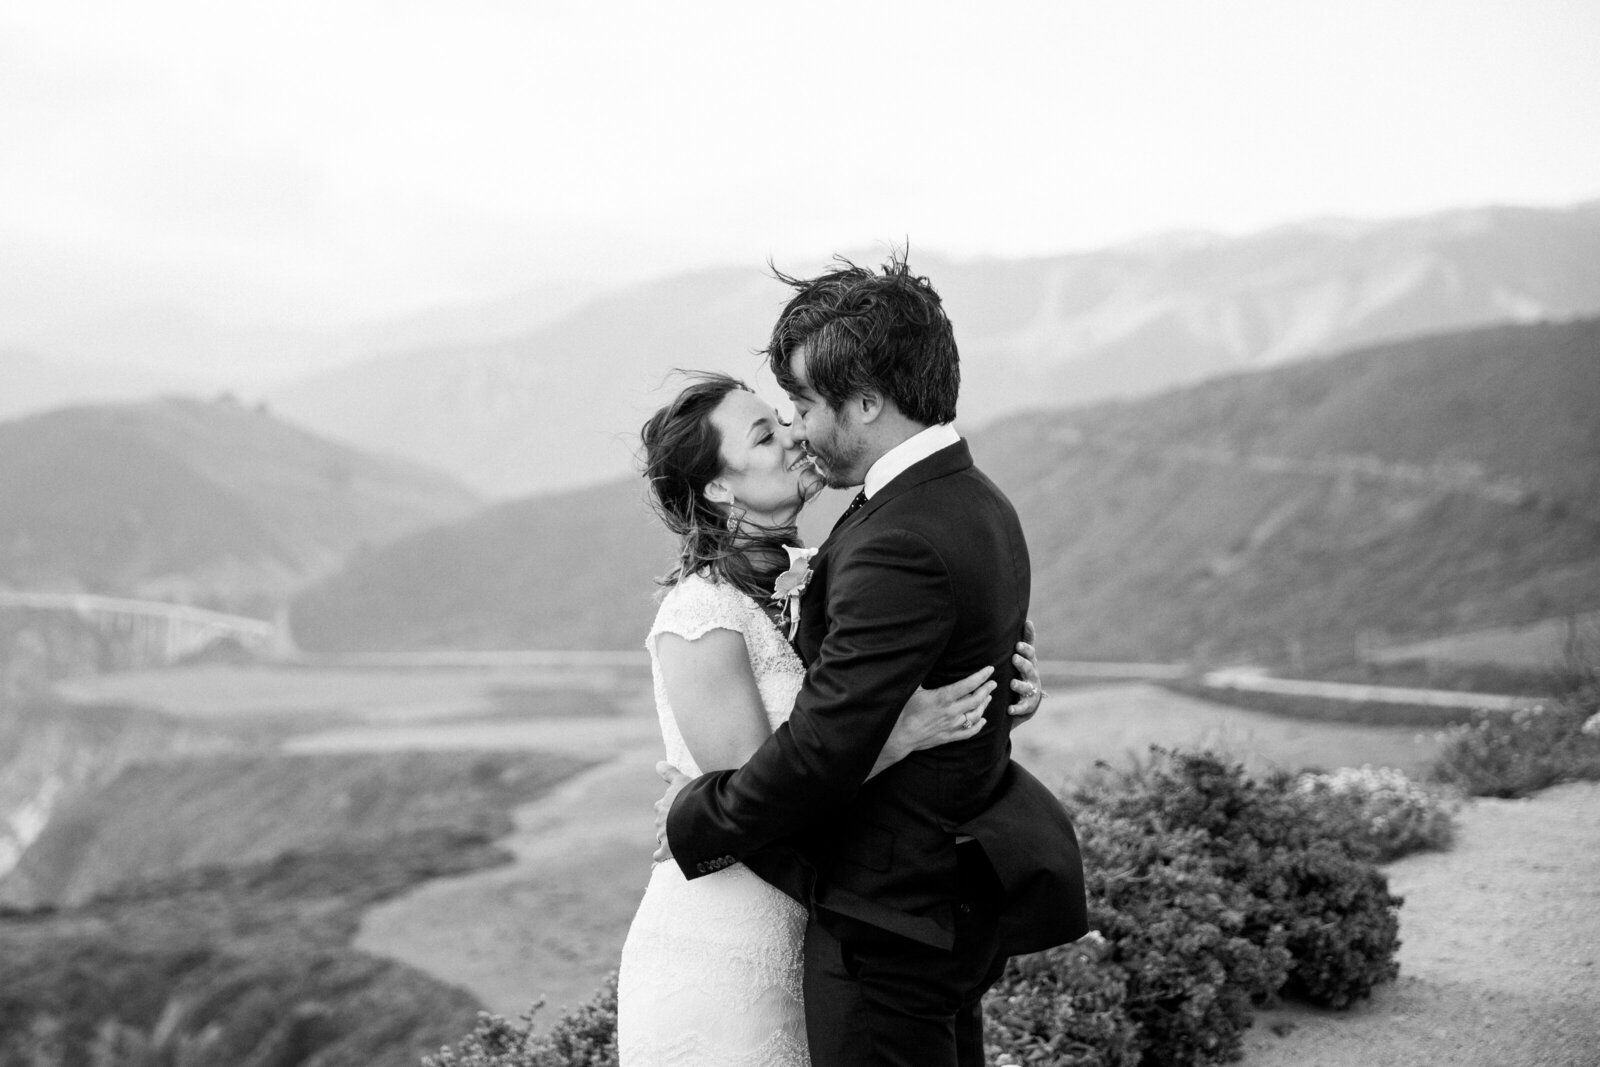 larissa-cleveland-elope-eleopement-intimate-wedding-photographer-san-francisco-napa-carmel-059